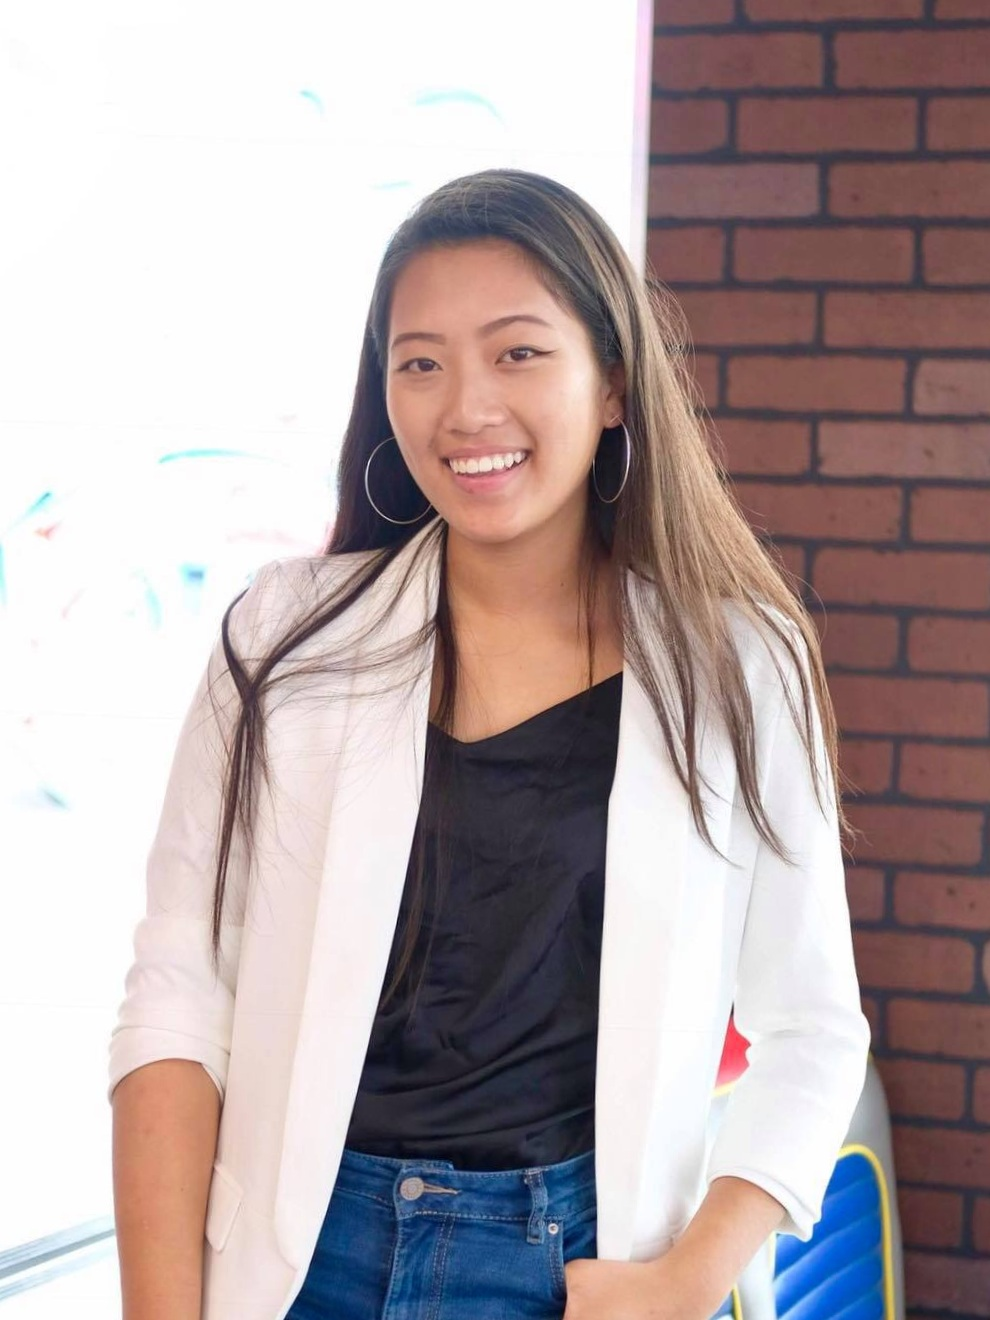 Angela Chan President - Major & Year: International Management, U2Hometown: Mississauga, ONWhat is your favorite city and why?Hong Kong because of my cultural roots and all the fond memories I have that are attached to the city. Hong Kong has amazing attractions, an amazing shopping scene and my favorite cuisine on the planet!What's on your bucket list?I would love to travel to Africa because it is the last continent I have yet to visit. I am planning to visit Morocco, Egypt or South Africa so that I can experience the unique culture and cuisine.Where do you see yourself in 5 years?In 5 years, I hope to be working for an international organization in the hospitality industry with strong values where I can grow as a leader and build a long term career.